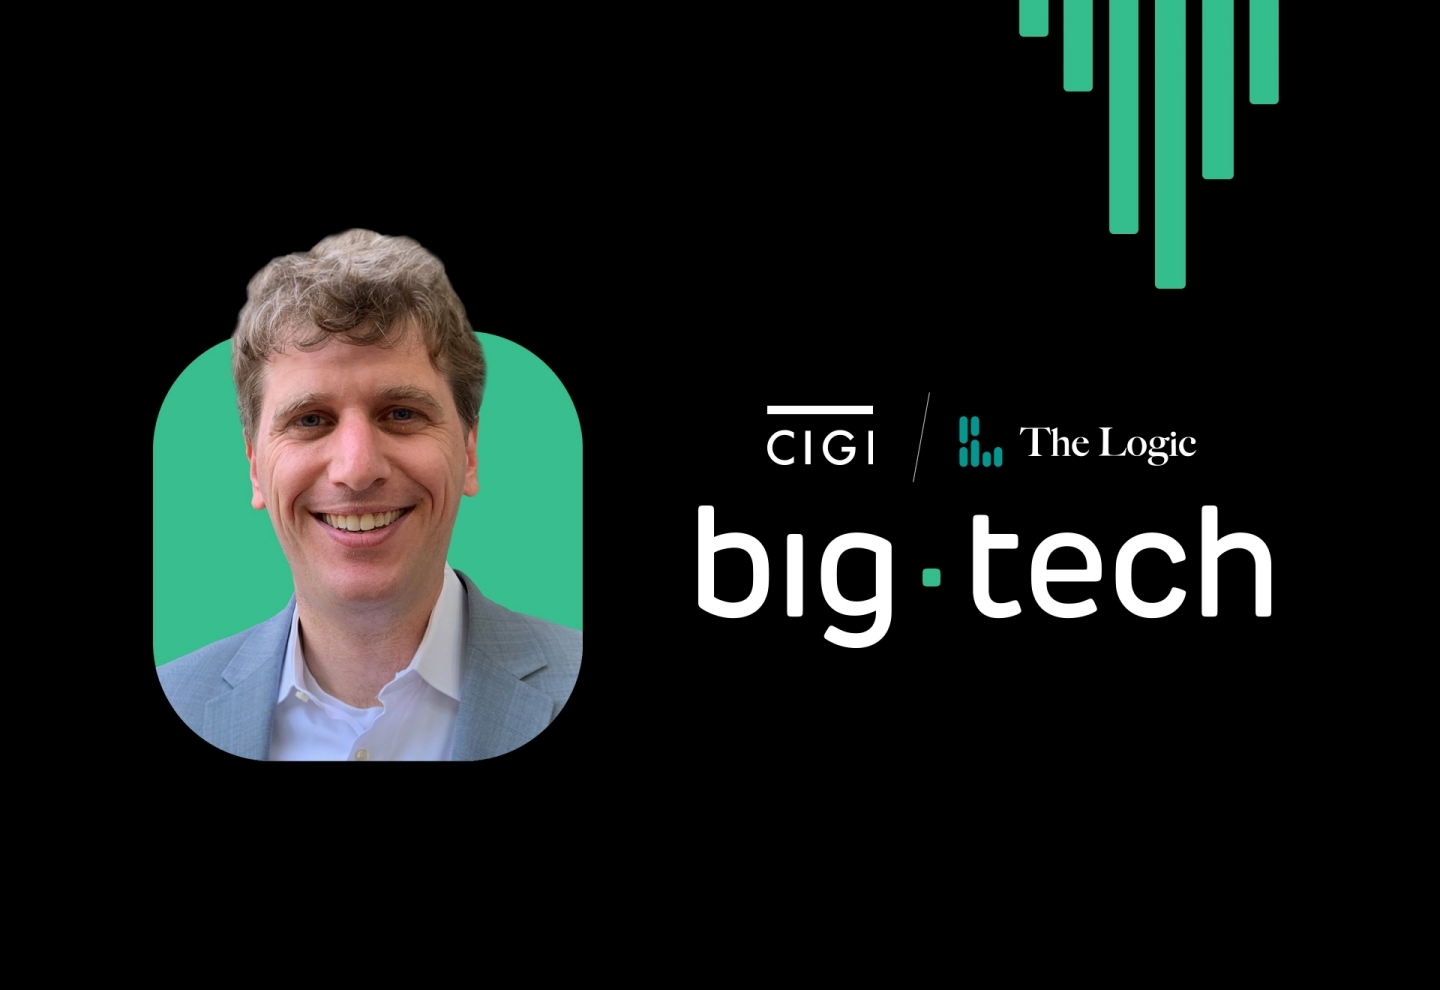 Matt Stoller on Taking on the Tech Goliaths